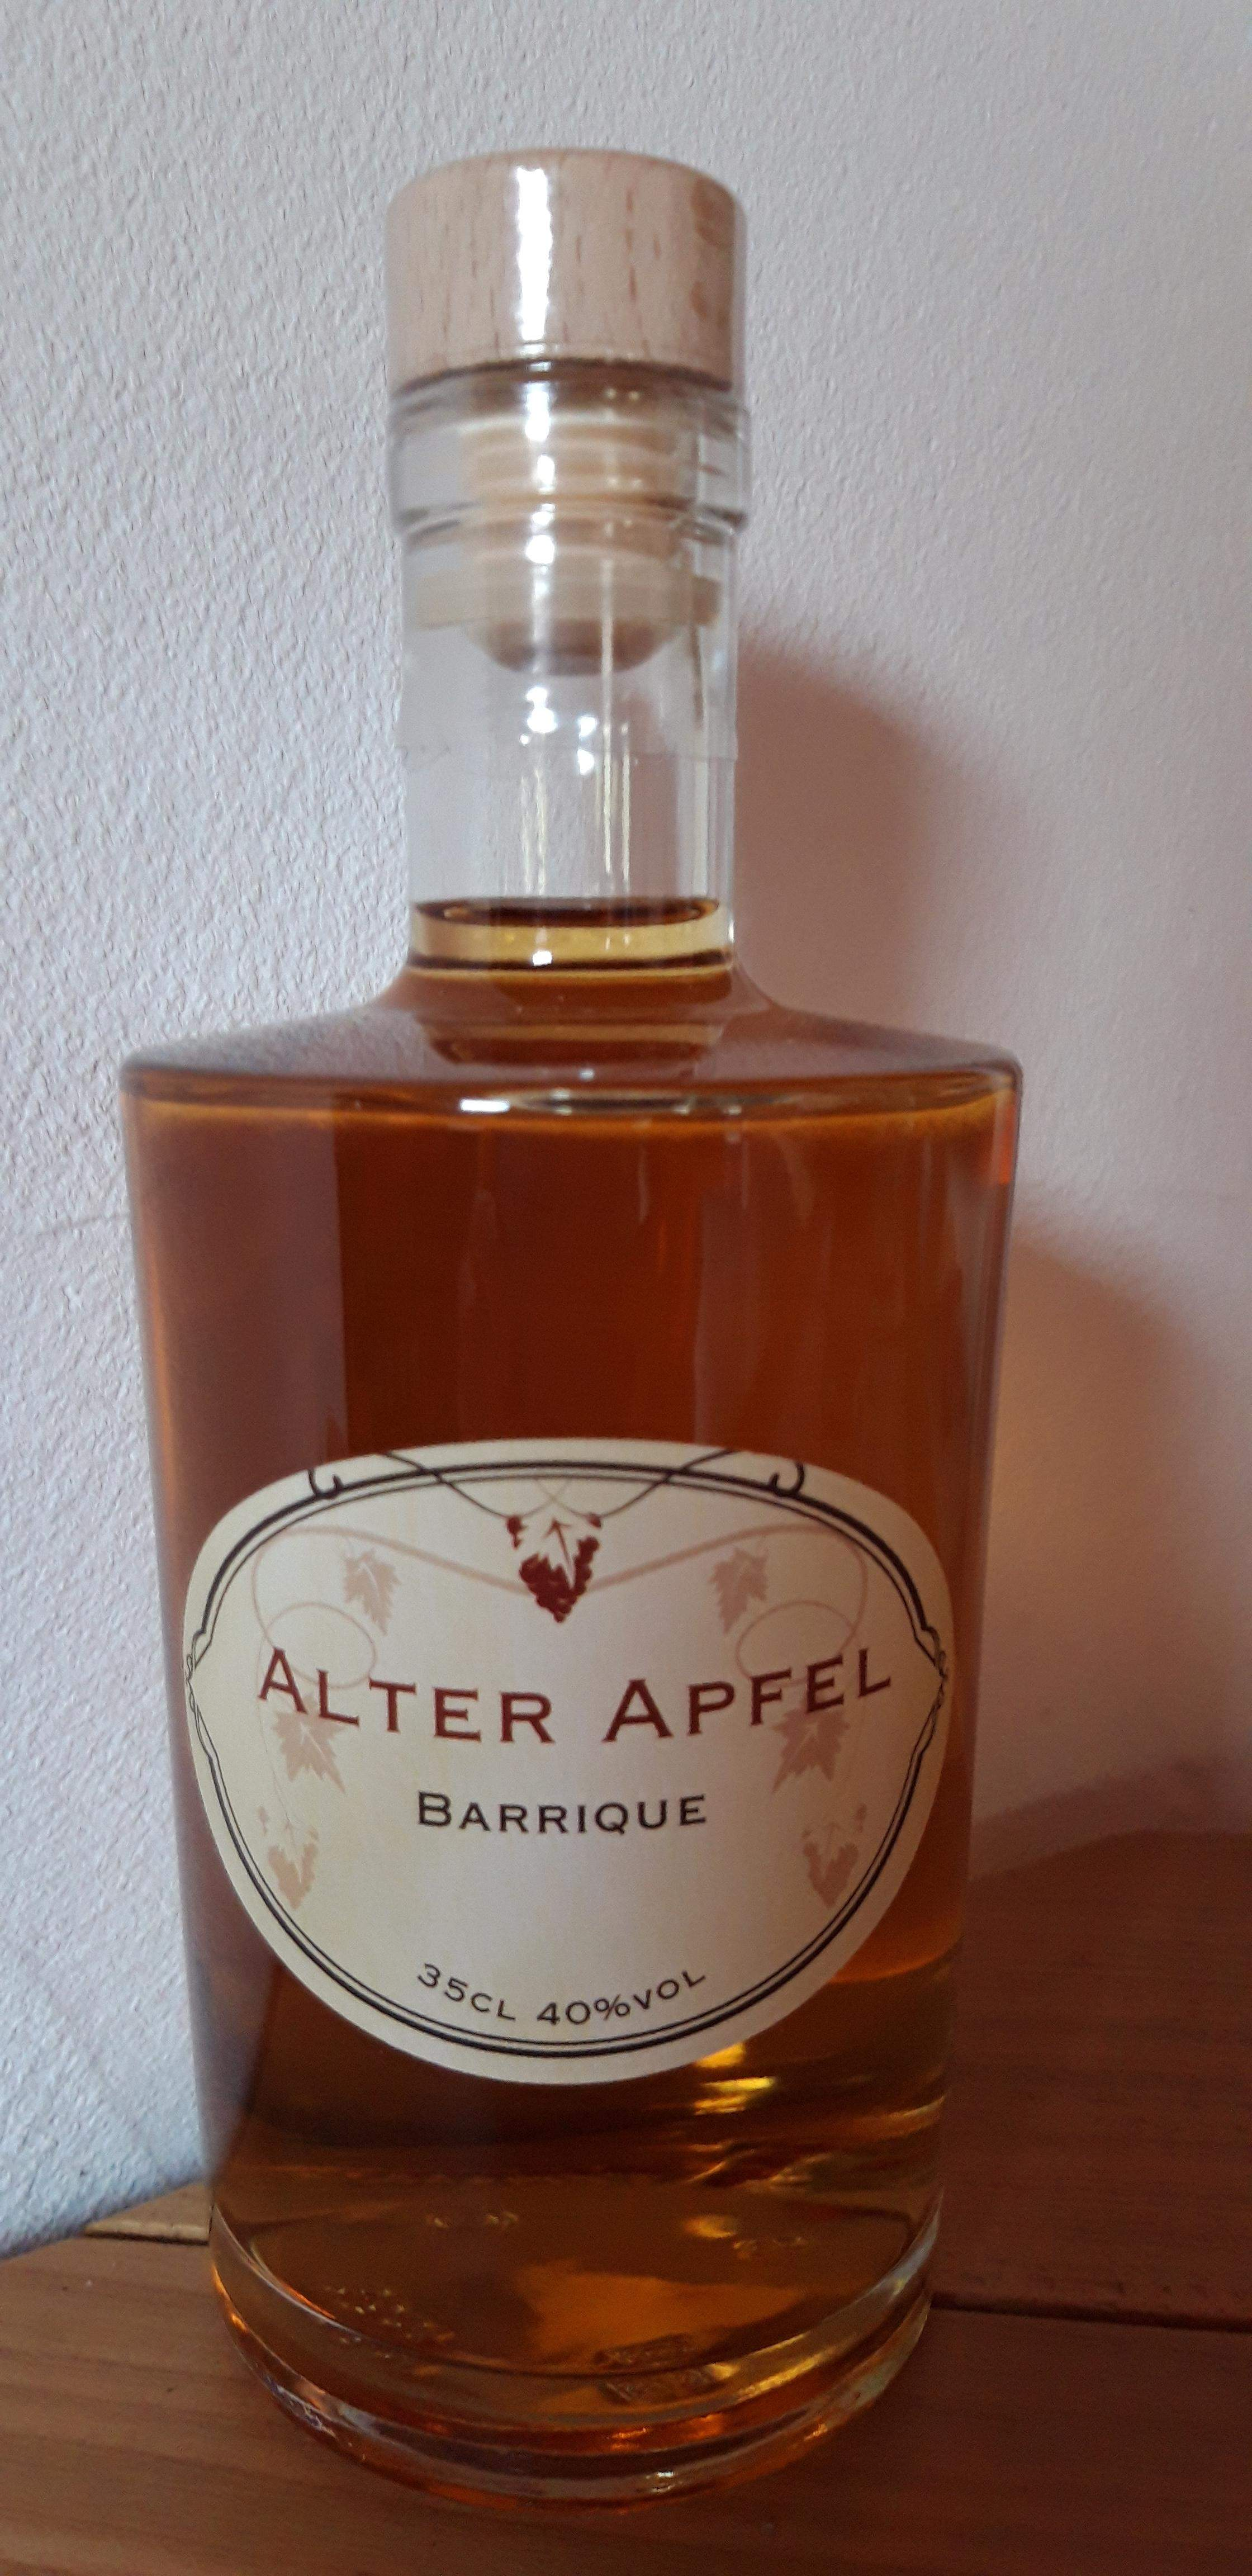 Alter Apfel Barrique